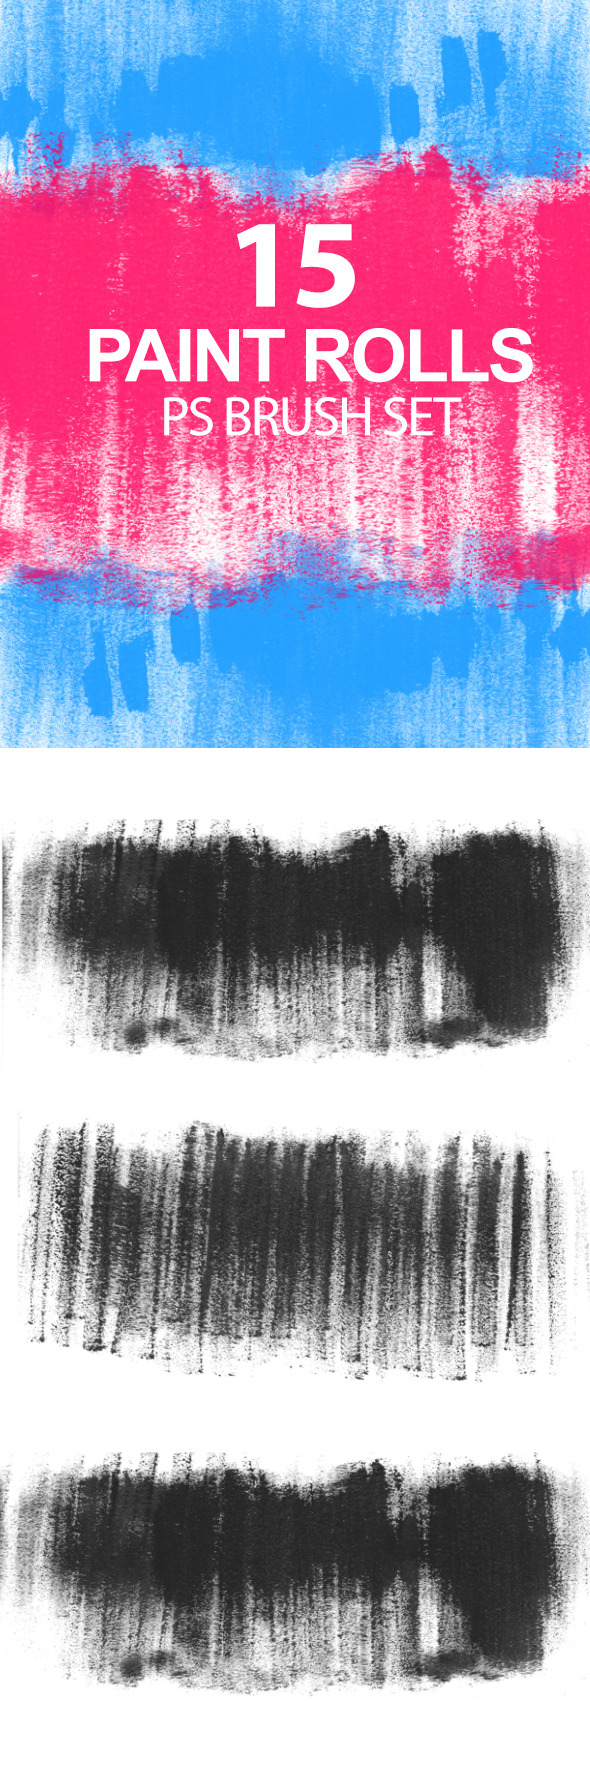 GraphicRiver Paint Rolls Photoshop Brush Set 6724034